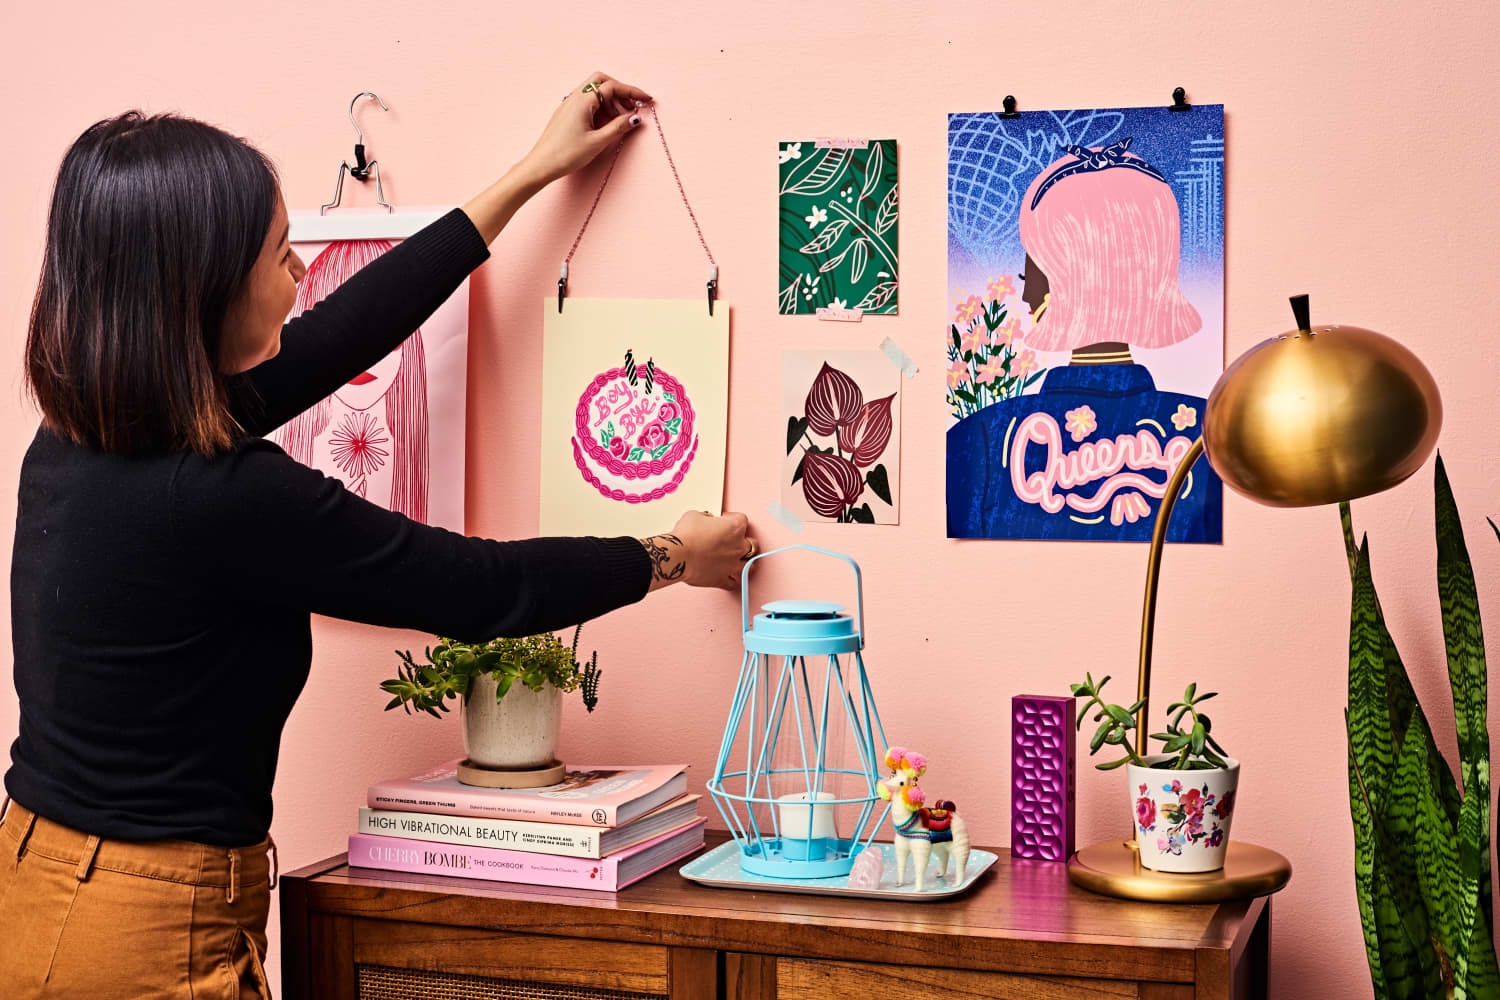 5 Tips for Getting Your Room Makeover or DIY Project Featured on Apartment Therapy